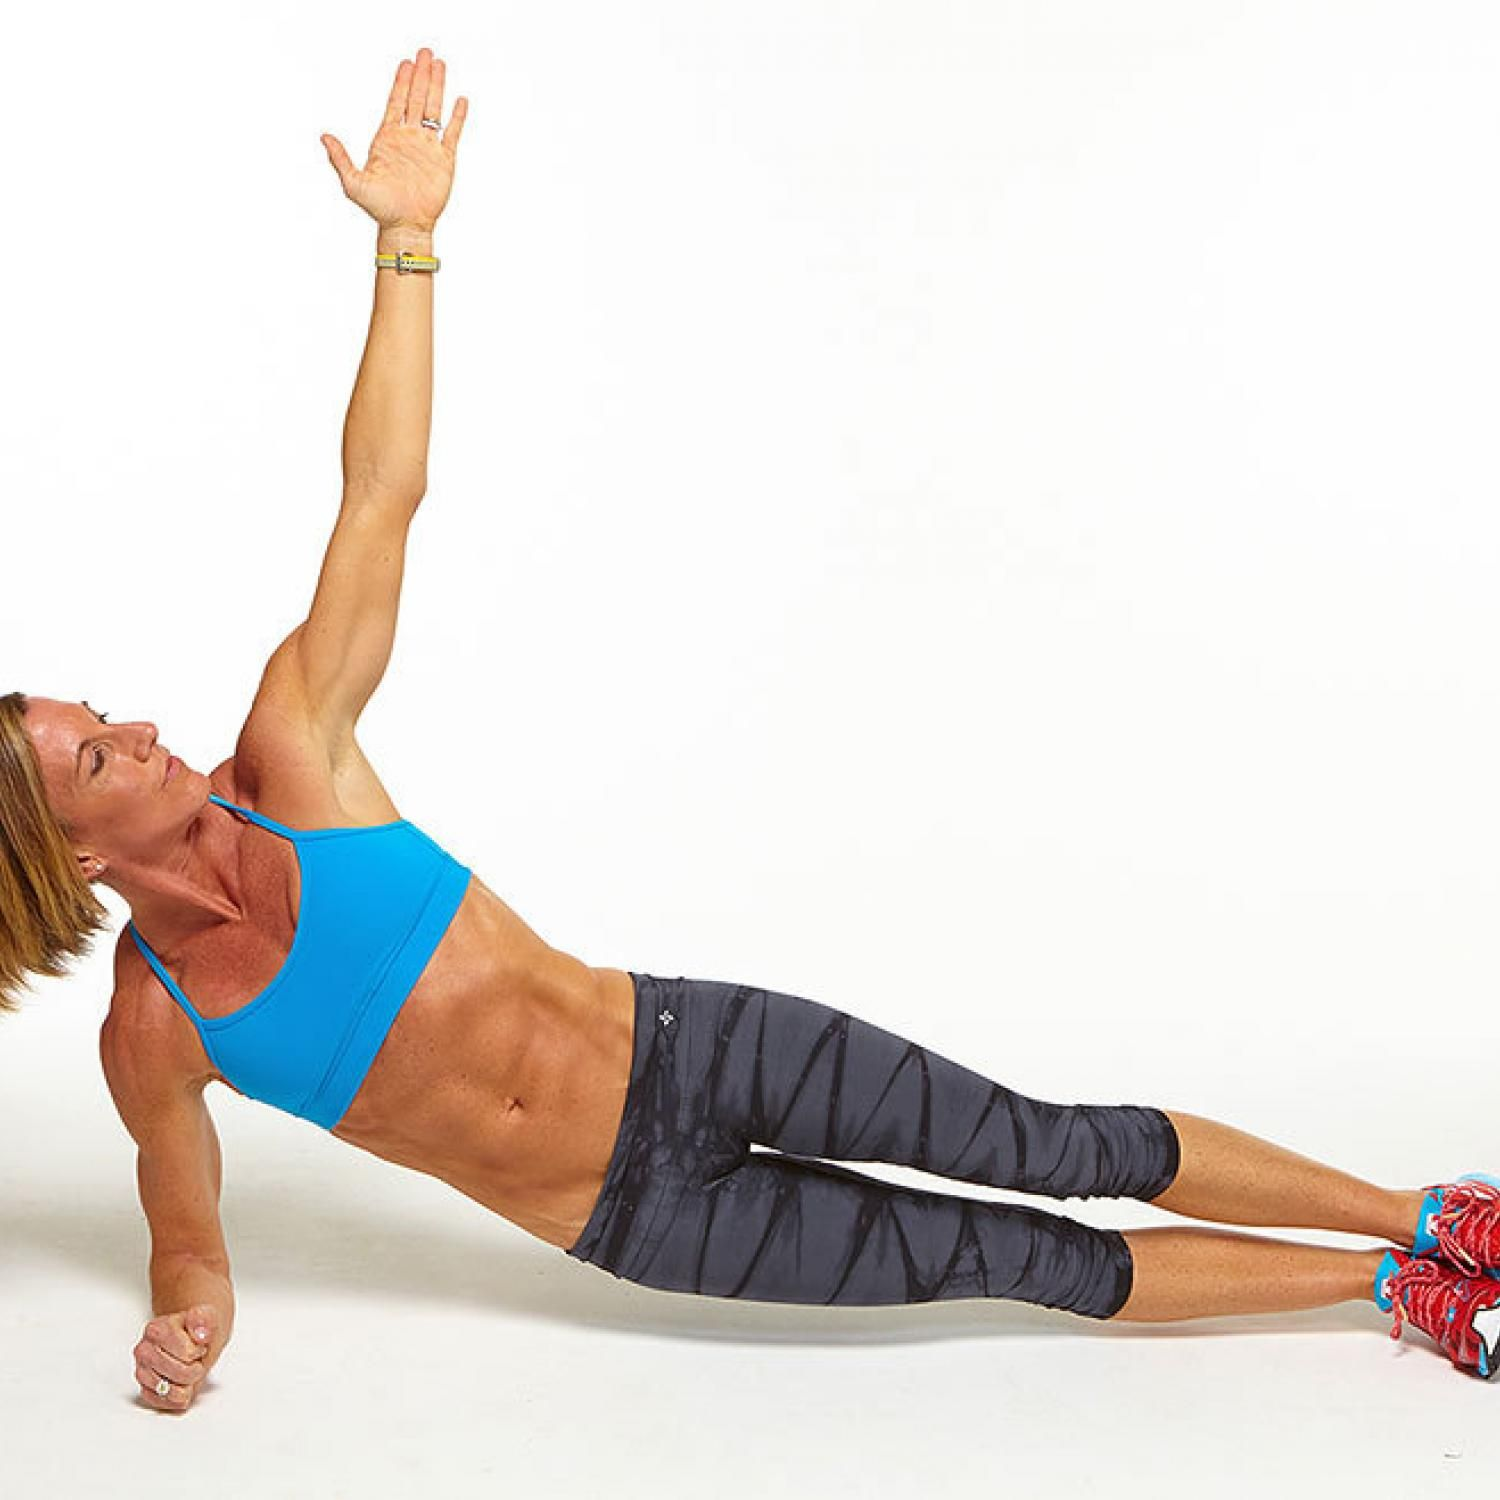 5/12 Plank Challenge: Low Side Plank with Hip Dips - Fitnessmagazine.com